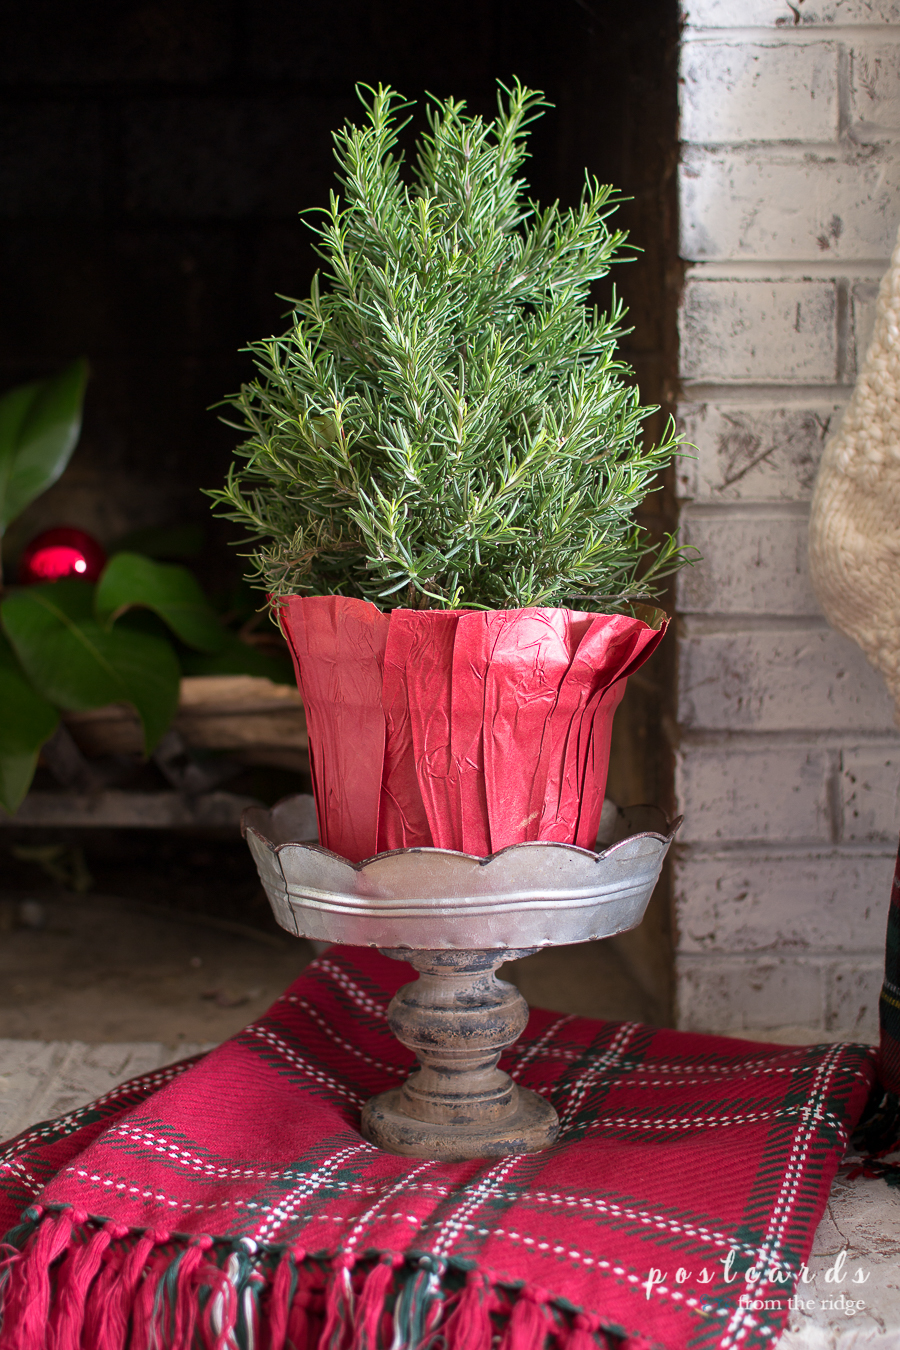 rosemary topiary on pedestal and plaid blanket